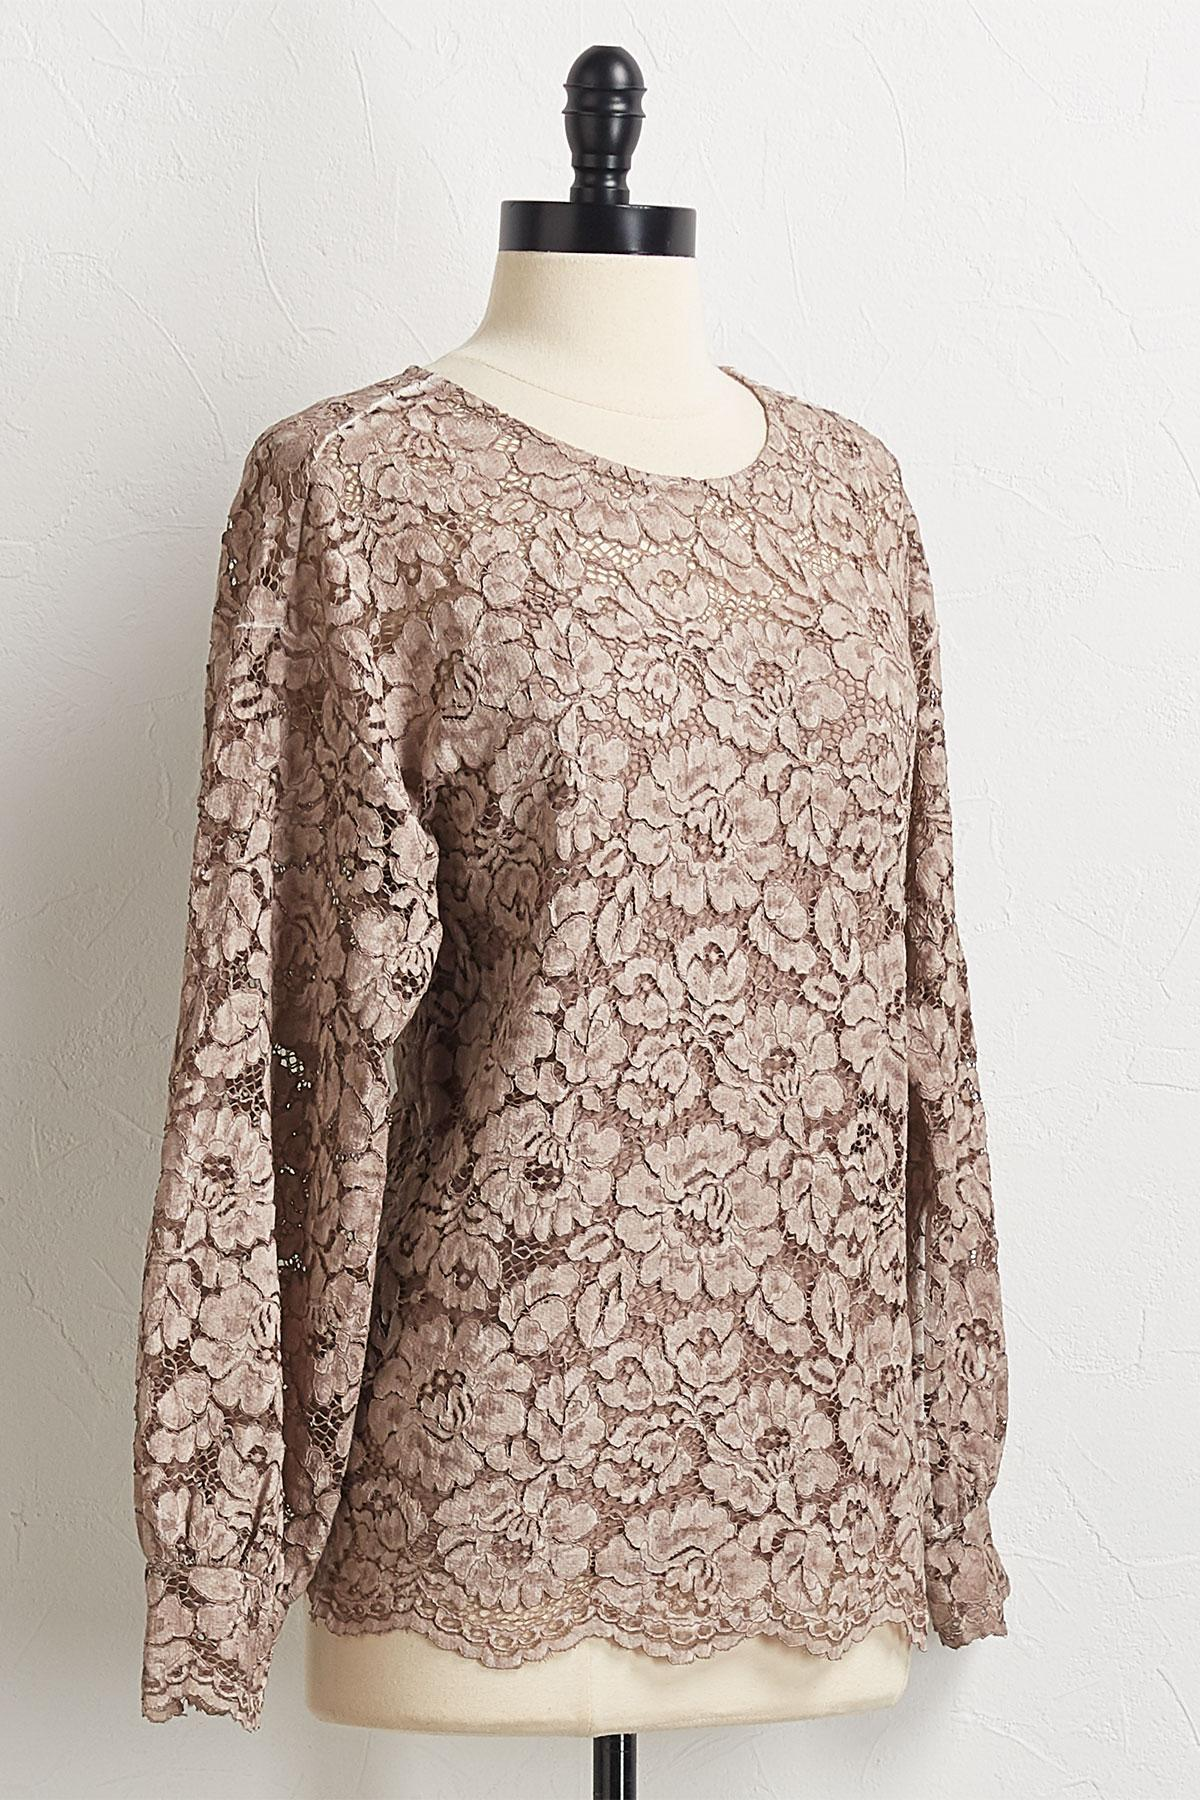 Scalloped Floral Lace Top